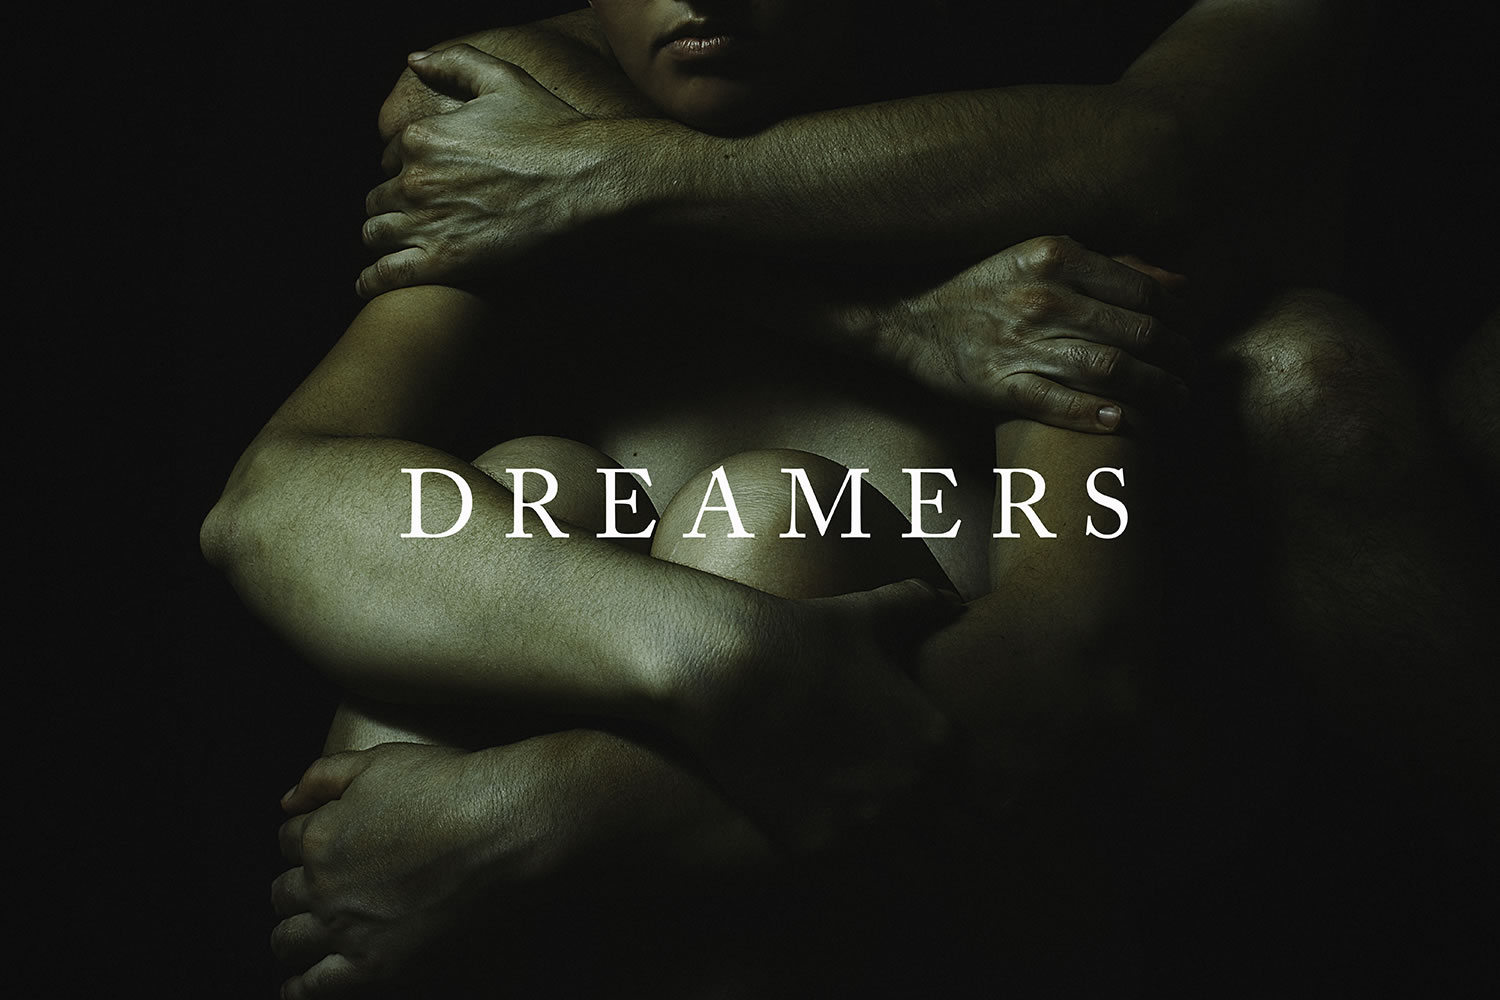 dreamers, romantic couple photo, dark style by Aitor Frías & Cecilia Jiménez